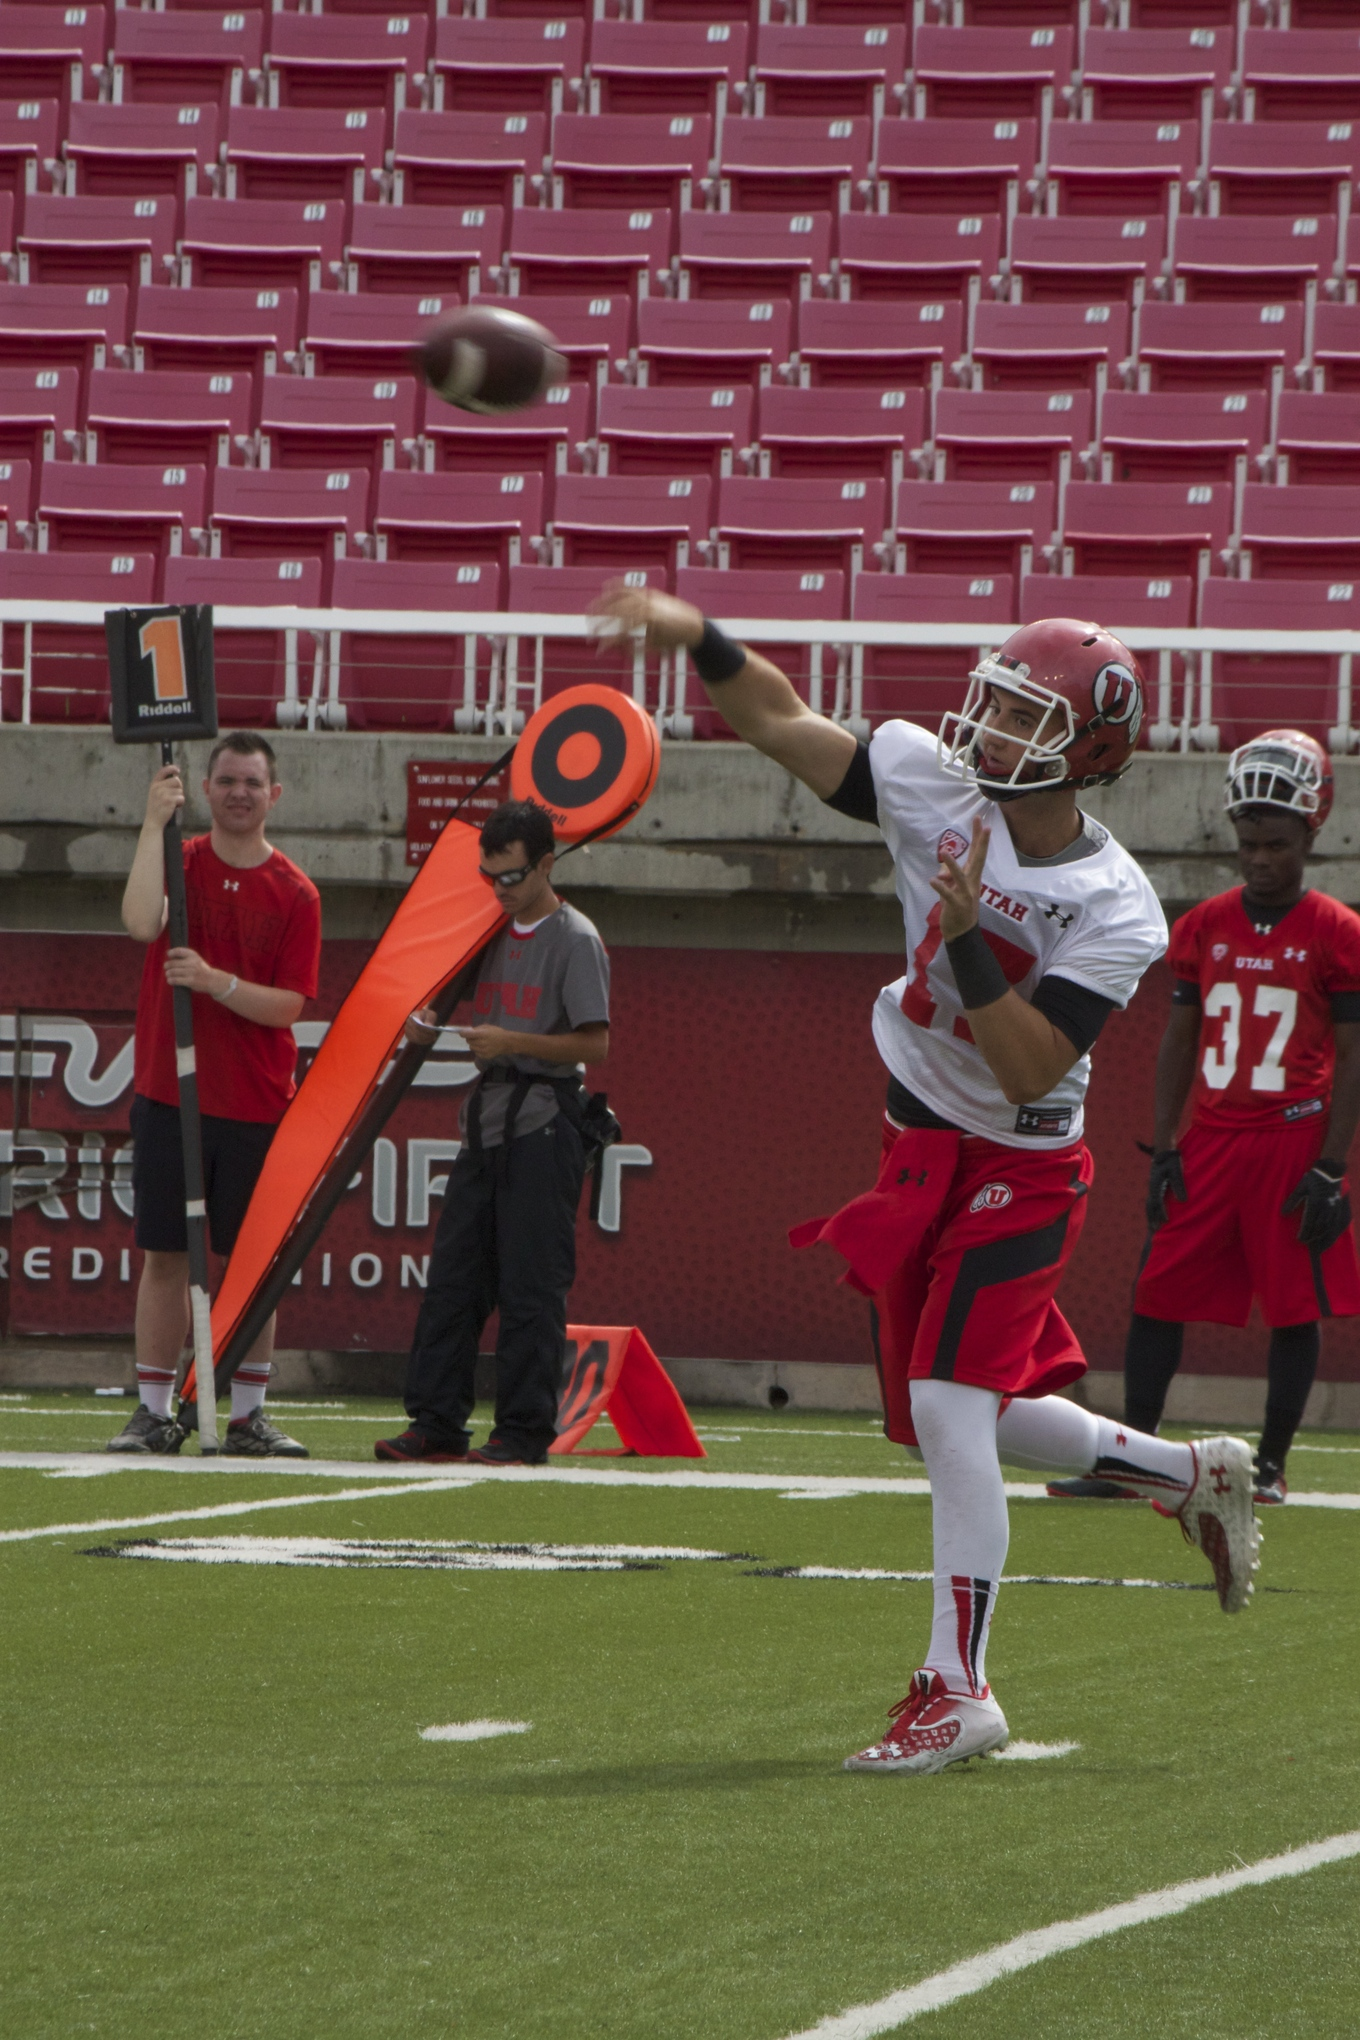 Redshirt freshman Connor Manning steps into a pass at the Utah fall camp this week.